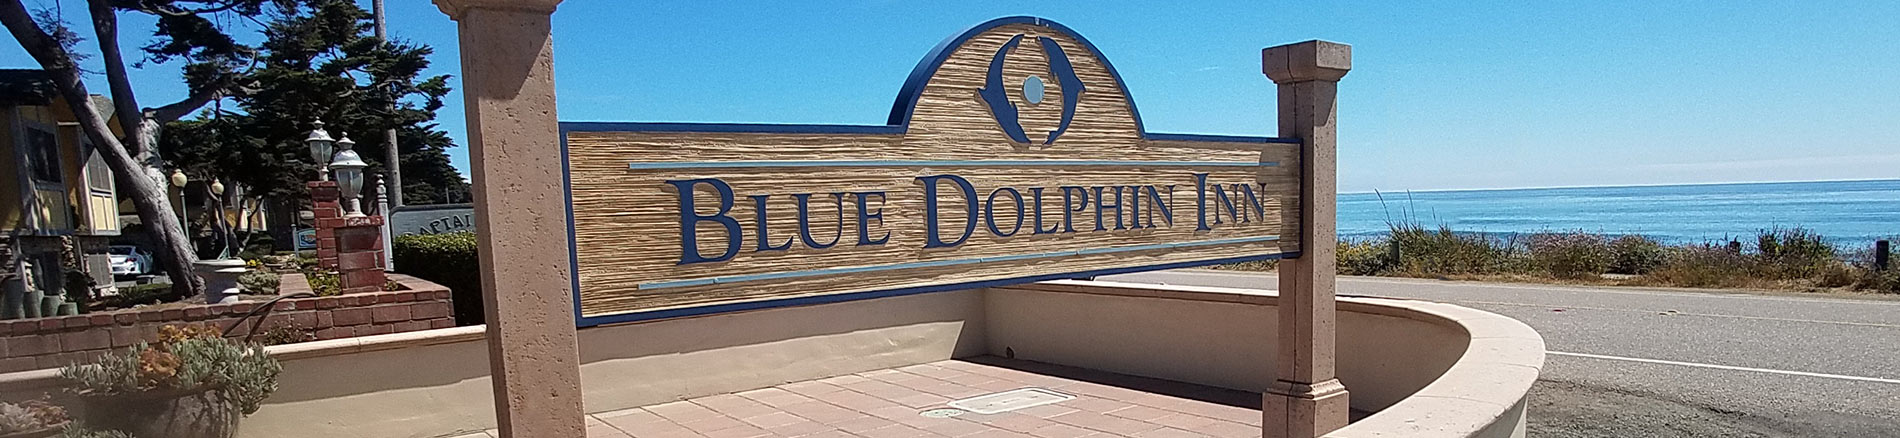 header - Blue Dolphin Inn